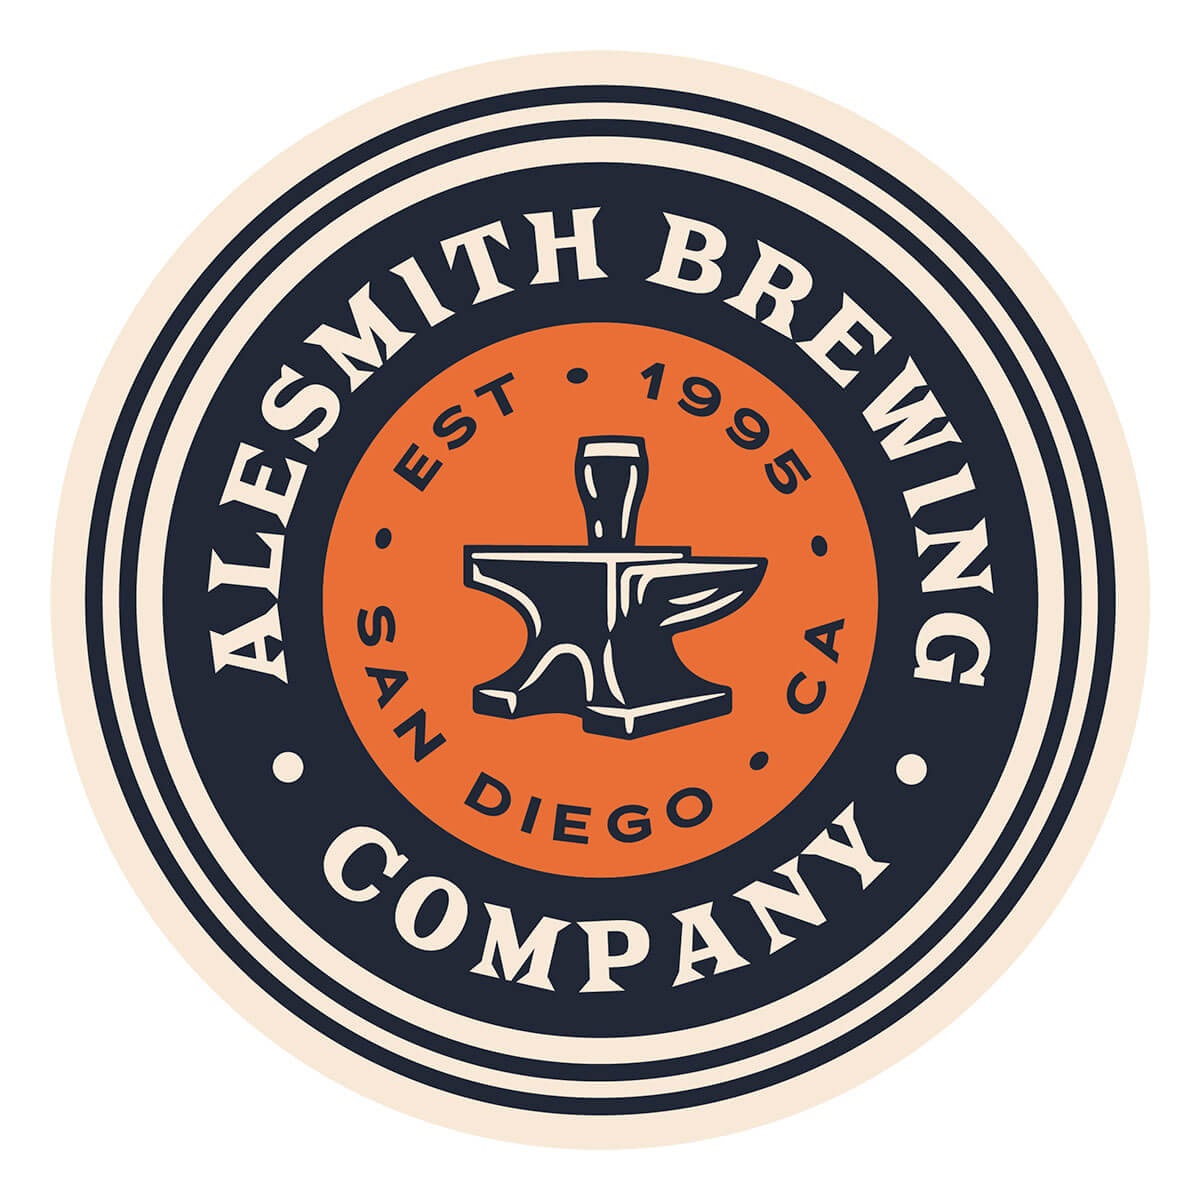 One of the new logos for AleSmith Brewing Company